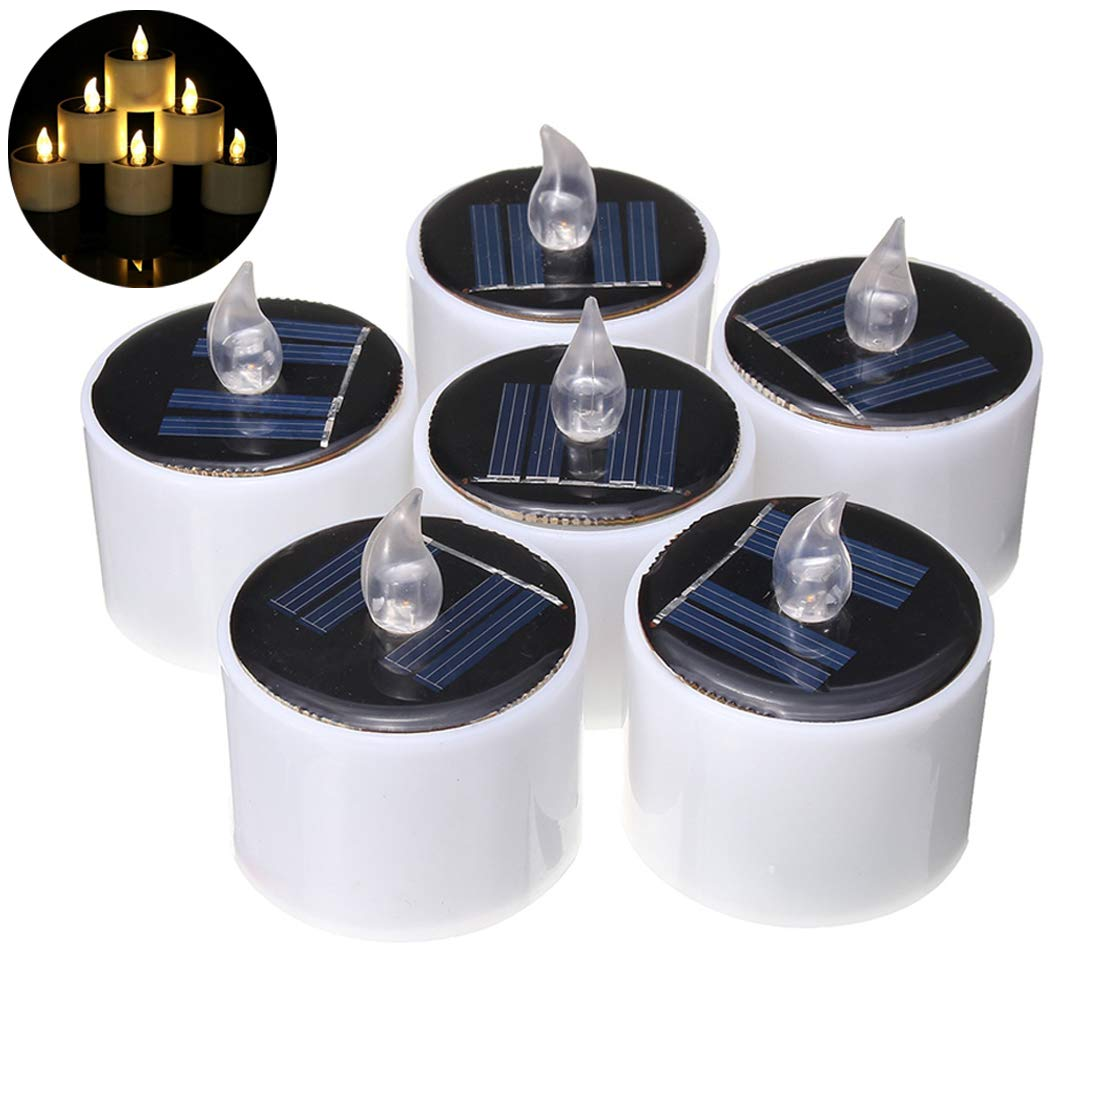 Ayans 6Pcs Solar Candles Lights,Flameless Flicker Solar Power Tealights Romantic Electronic Solar LED Lamp Night Light for Home Party,Festival Decor(Warm white)